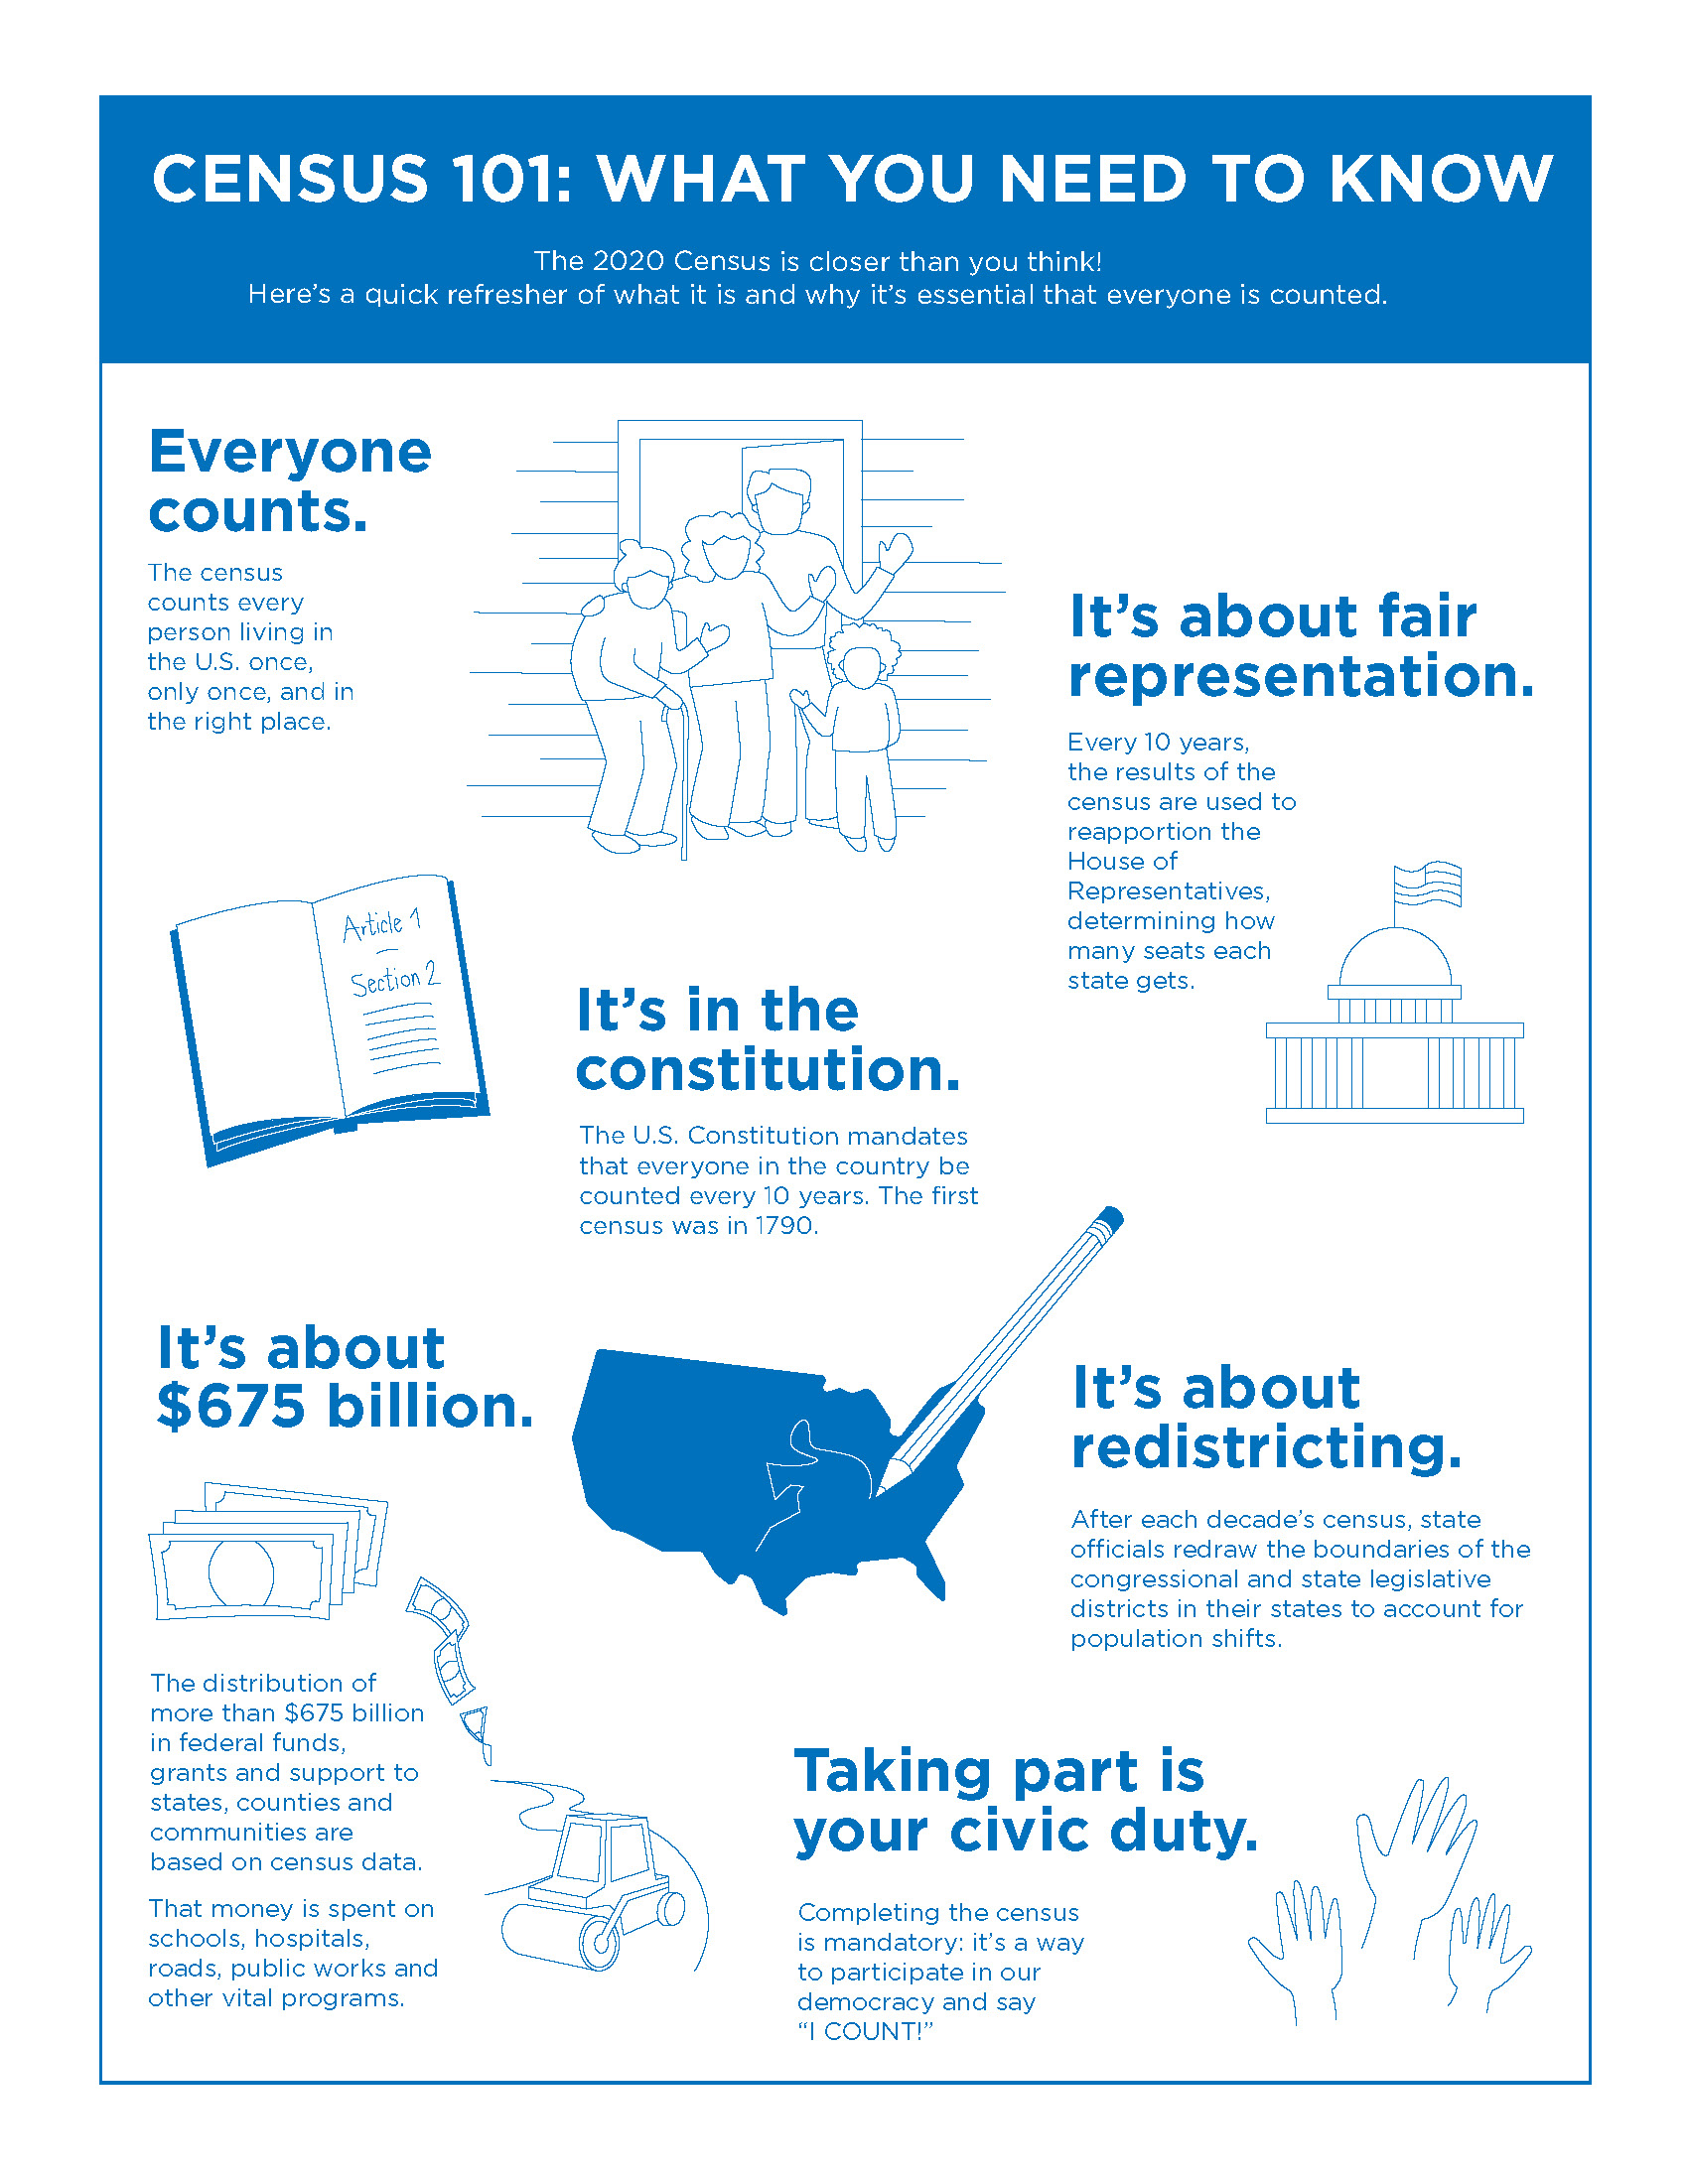 Census Information in Graphic Format